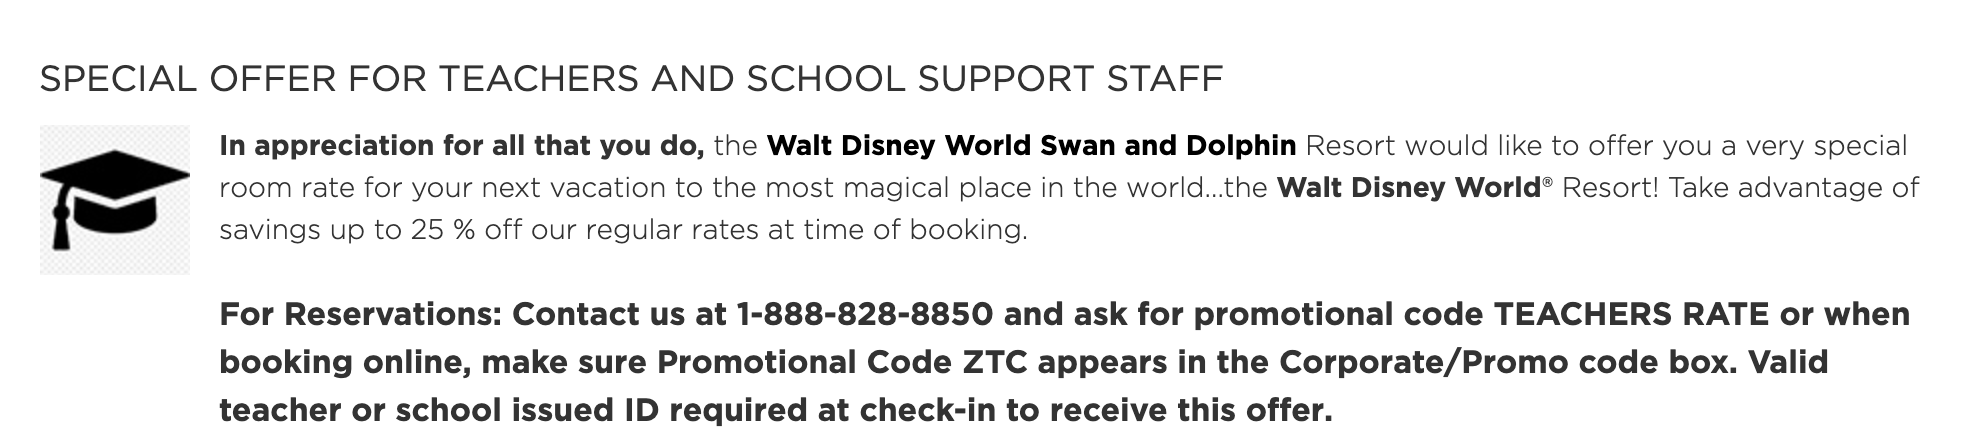 The Disney World Swan And Dolphin Resort Has Special Offers For Nurses And Teachers The Disney Food Blog